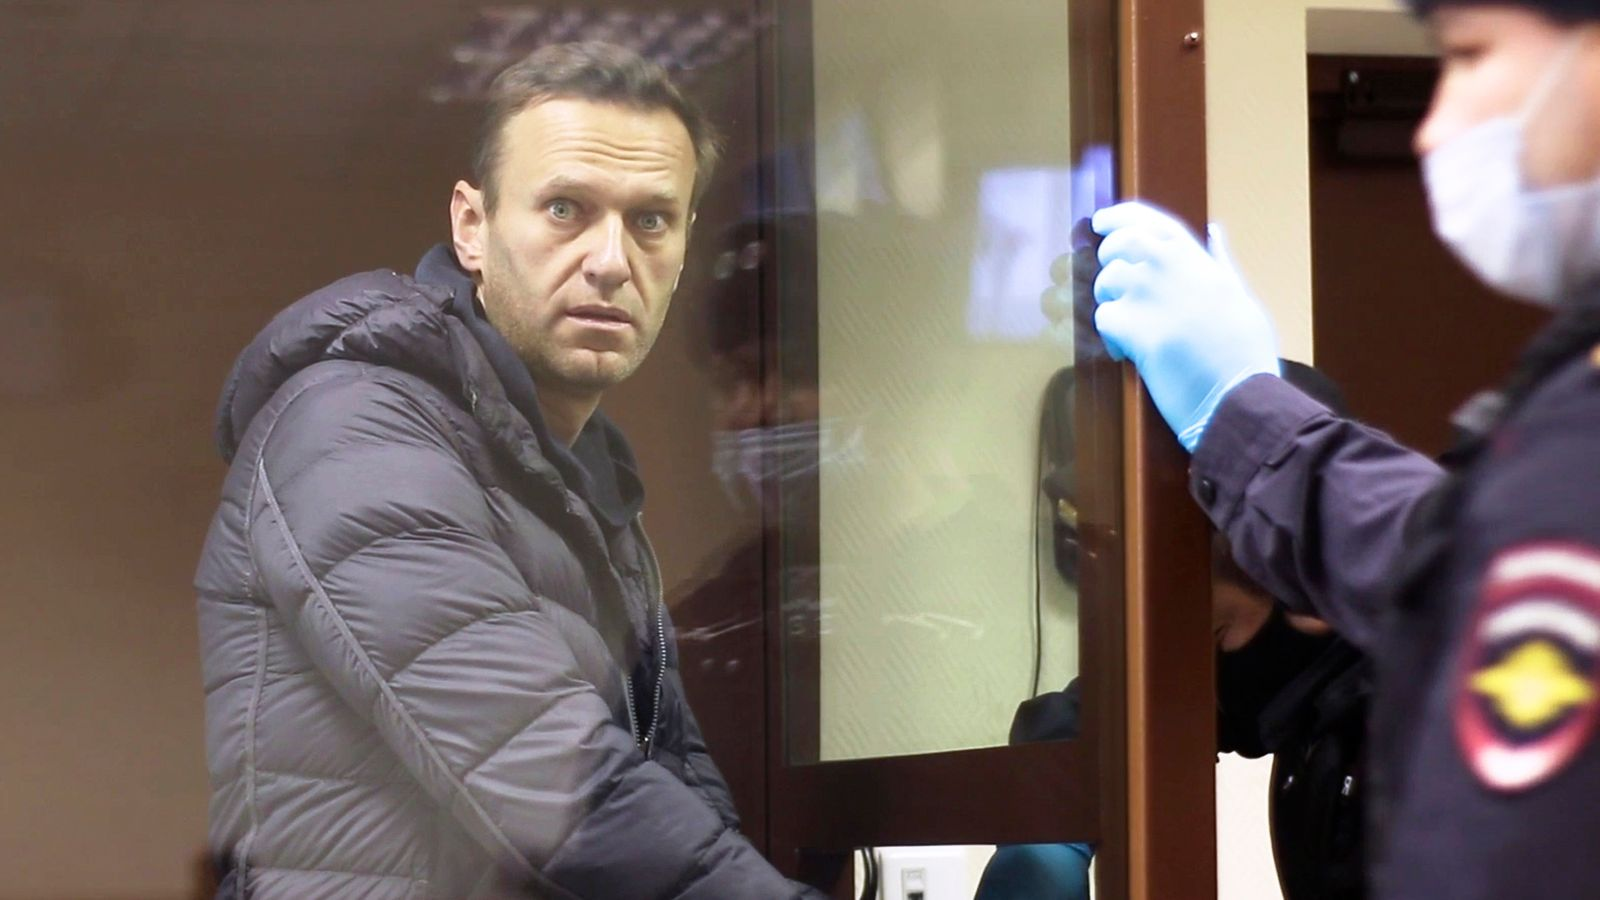 Hunger striking Navalny 'losing feeling in hands after suffering two spinal hernias'